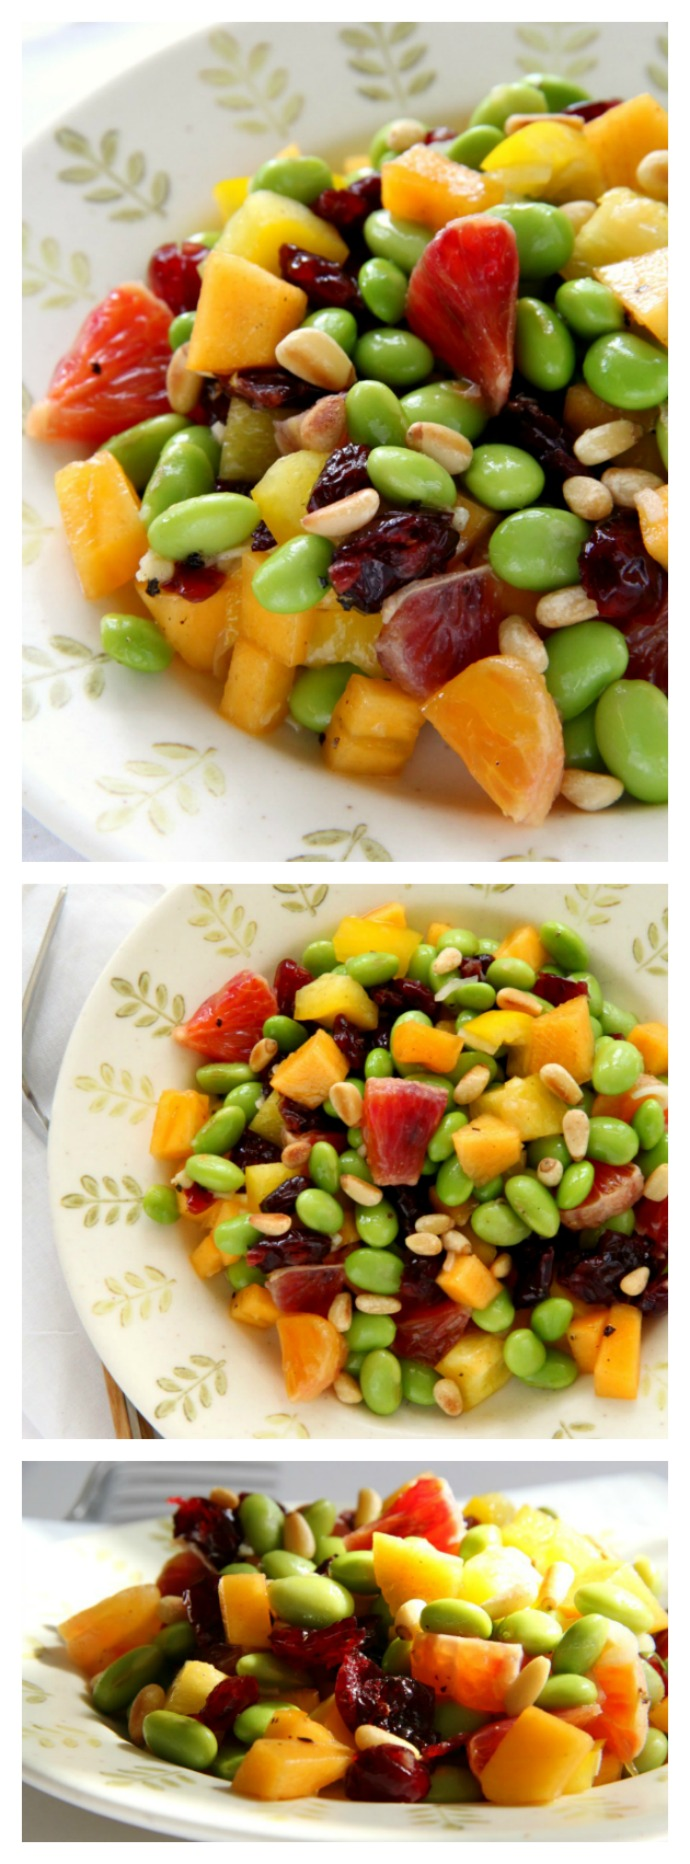 fruity-edamame-salad-with-persimmon-peppers-and-pine-nuts-on-shockinglydelicious-com